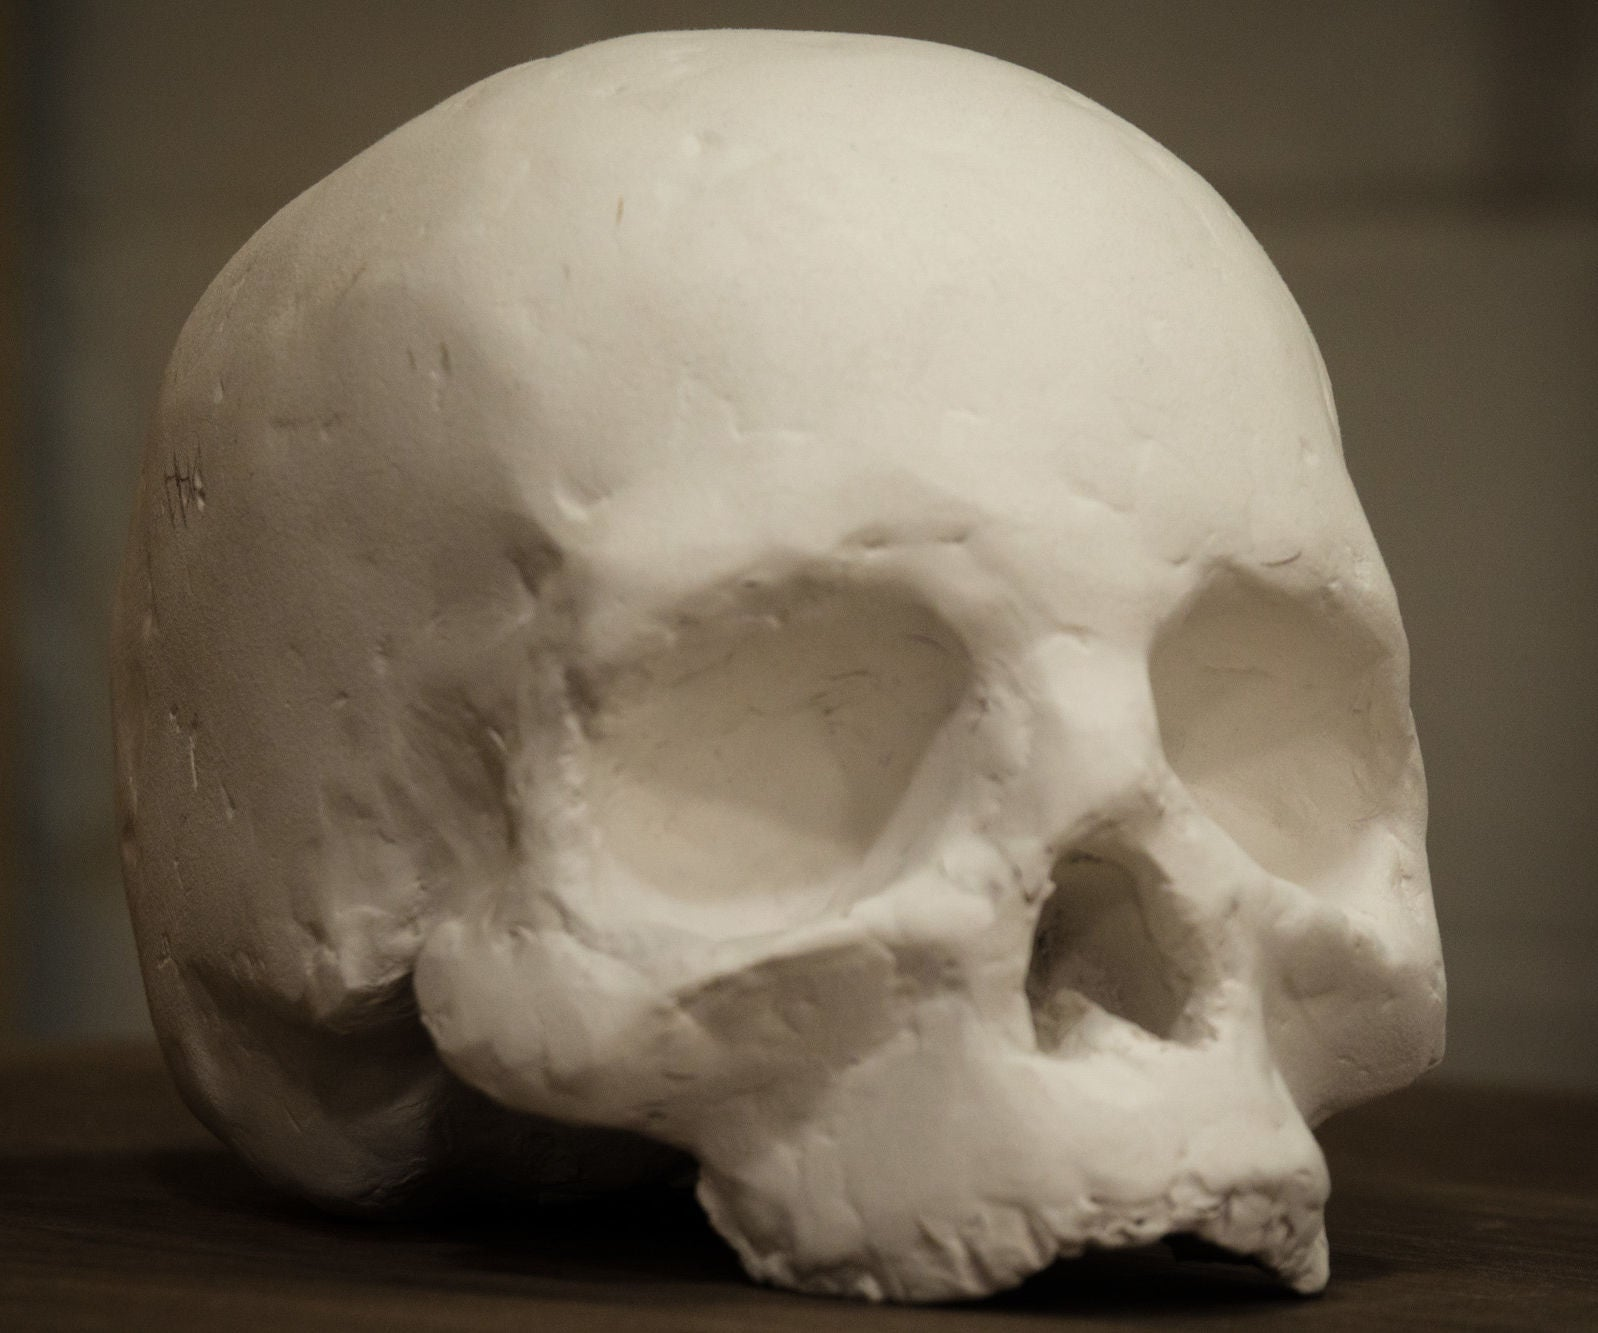 Laser Cutting Cardboard To Make A Human Skull 14 Steps With Pictures